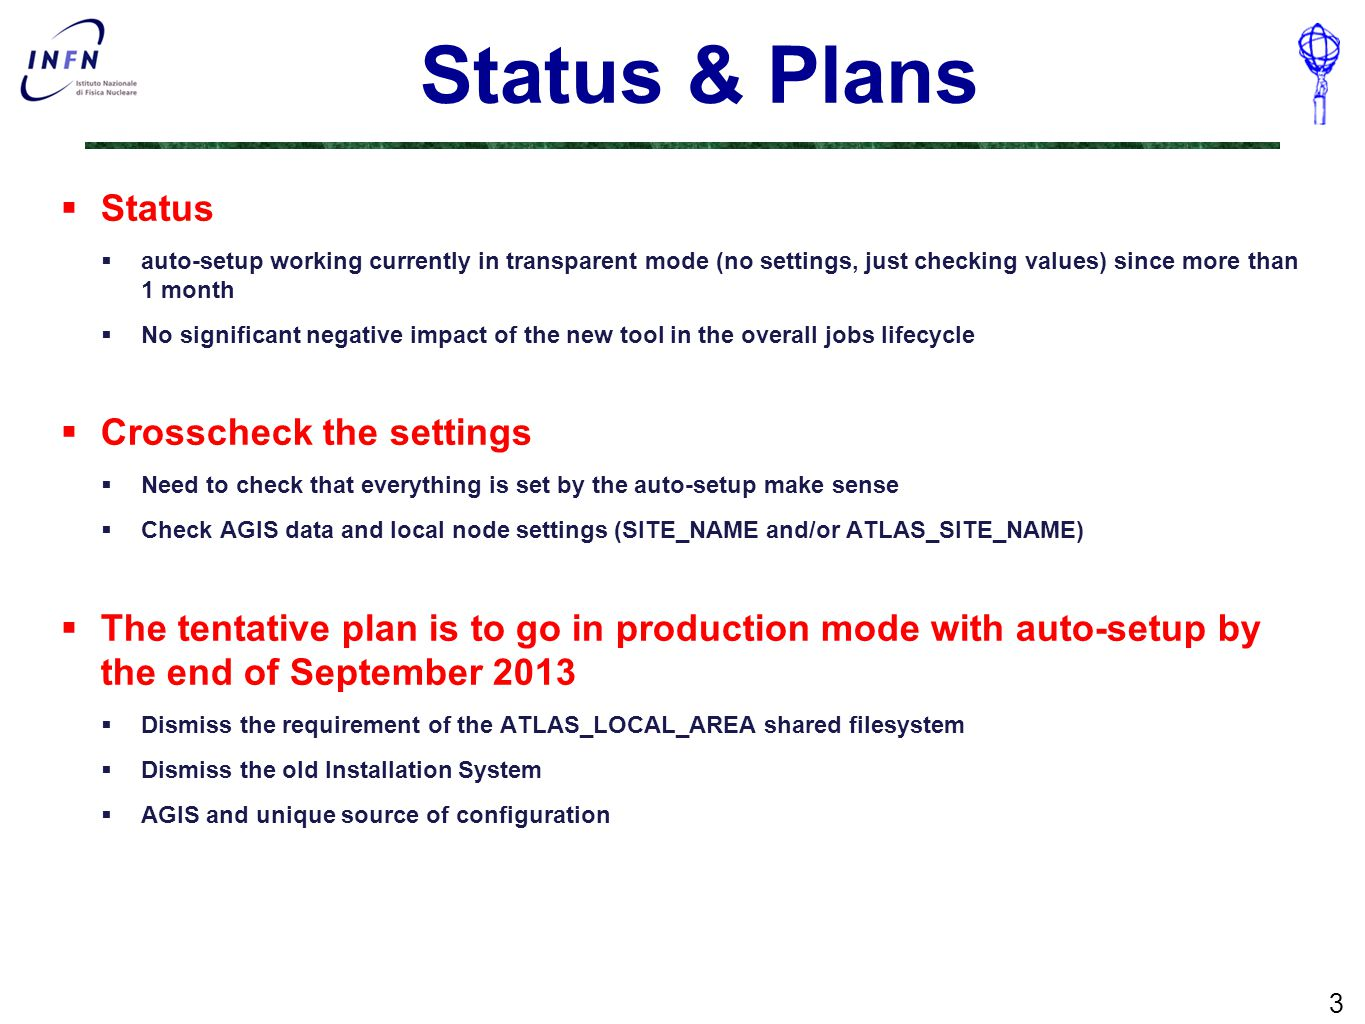 Status & Plans  Status  auto-setup working currently in transparent mode (no settings, just checking values) since more than 1 month  No significant negative impact of the new tool in the overall jobs lifecycle  Crosscheck the settings  Need to check that everything is set by the auto-setup make sense  Check AGIS data and local node settings (SITE_NAME and/or ATLAS_SITE_NAME)  The tentative plan is to go in production mode with auto-setup by the end of September 2013  Dismiss the requirement of the ATLAS_LOCAL_AREA shared filesystem  Dismiss the old Installation System  AGIS and unique source of configuration 3